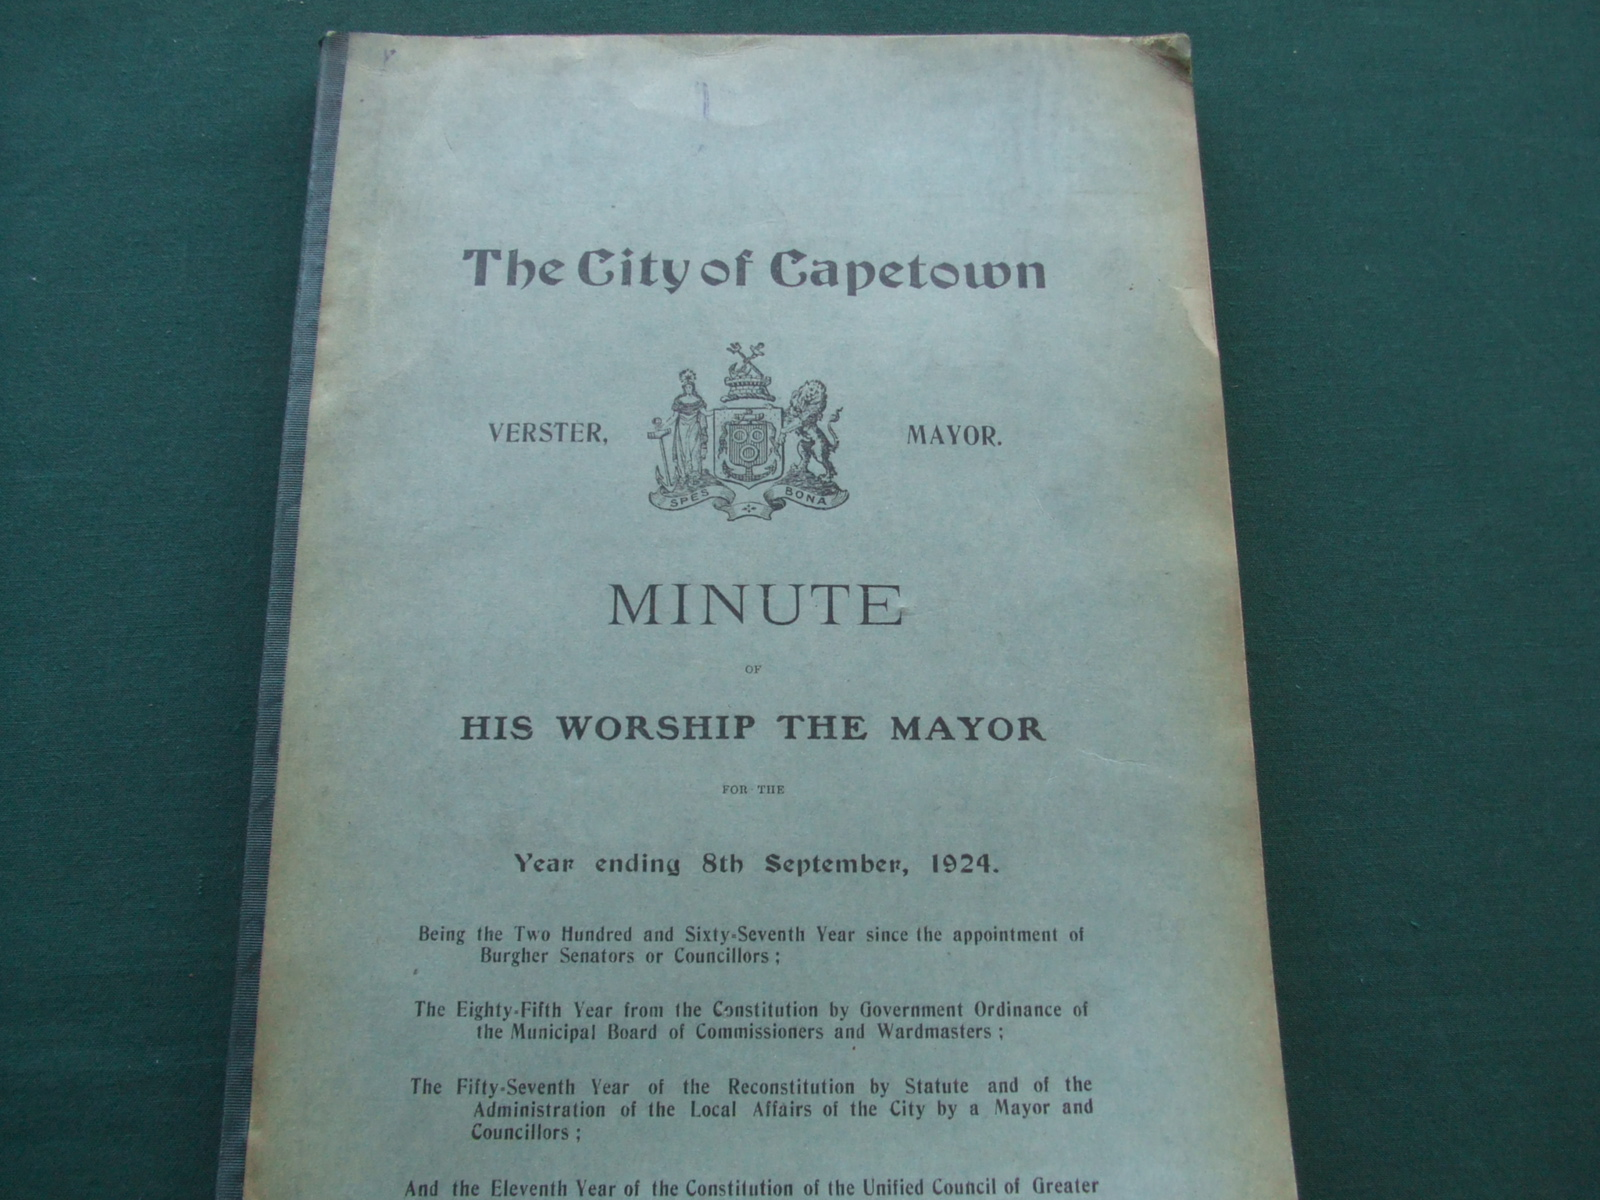 Image for The City of Capetown Minute of His Worship the Mayor for the Year Ending 7th September, 1924.